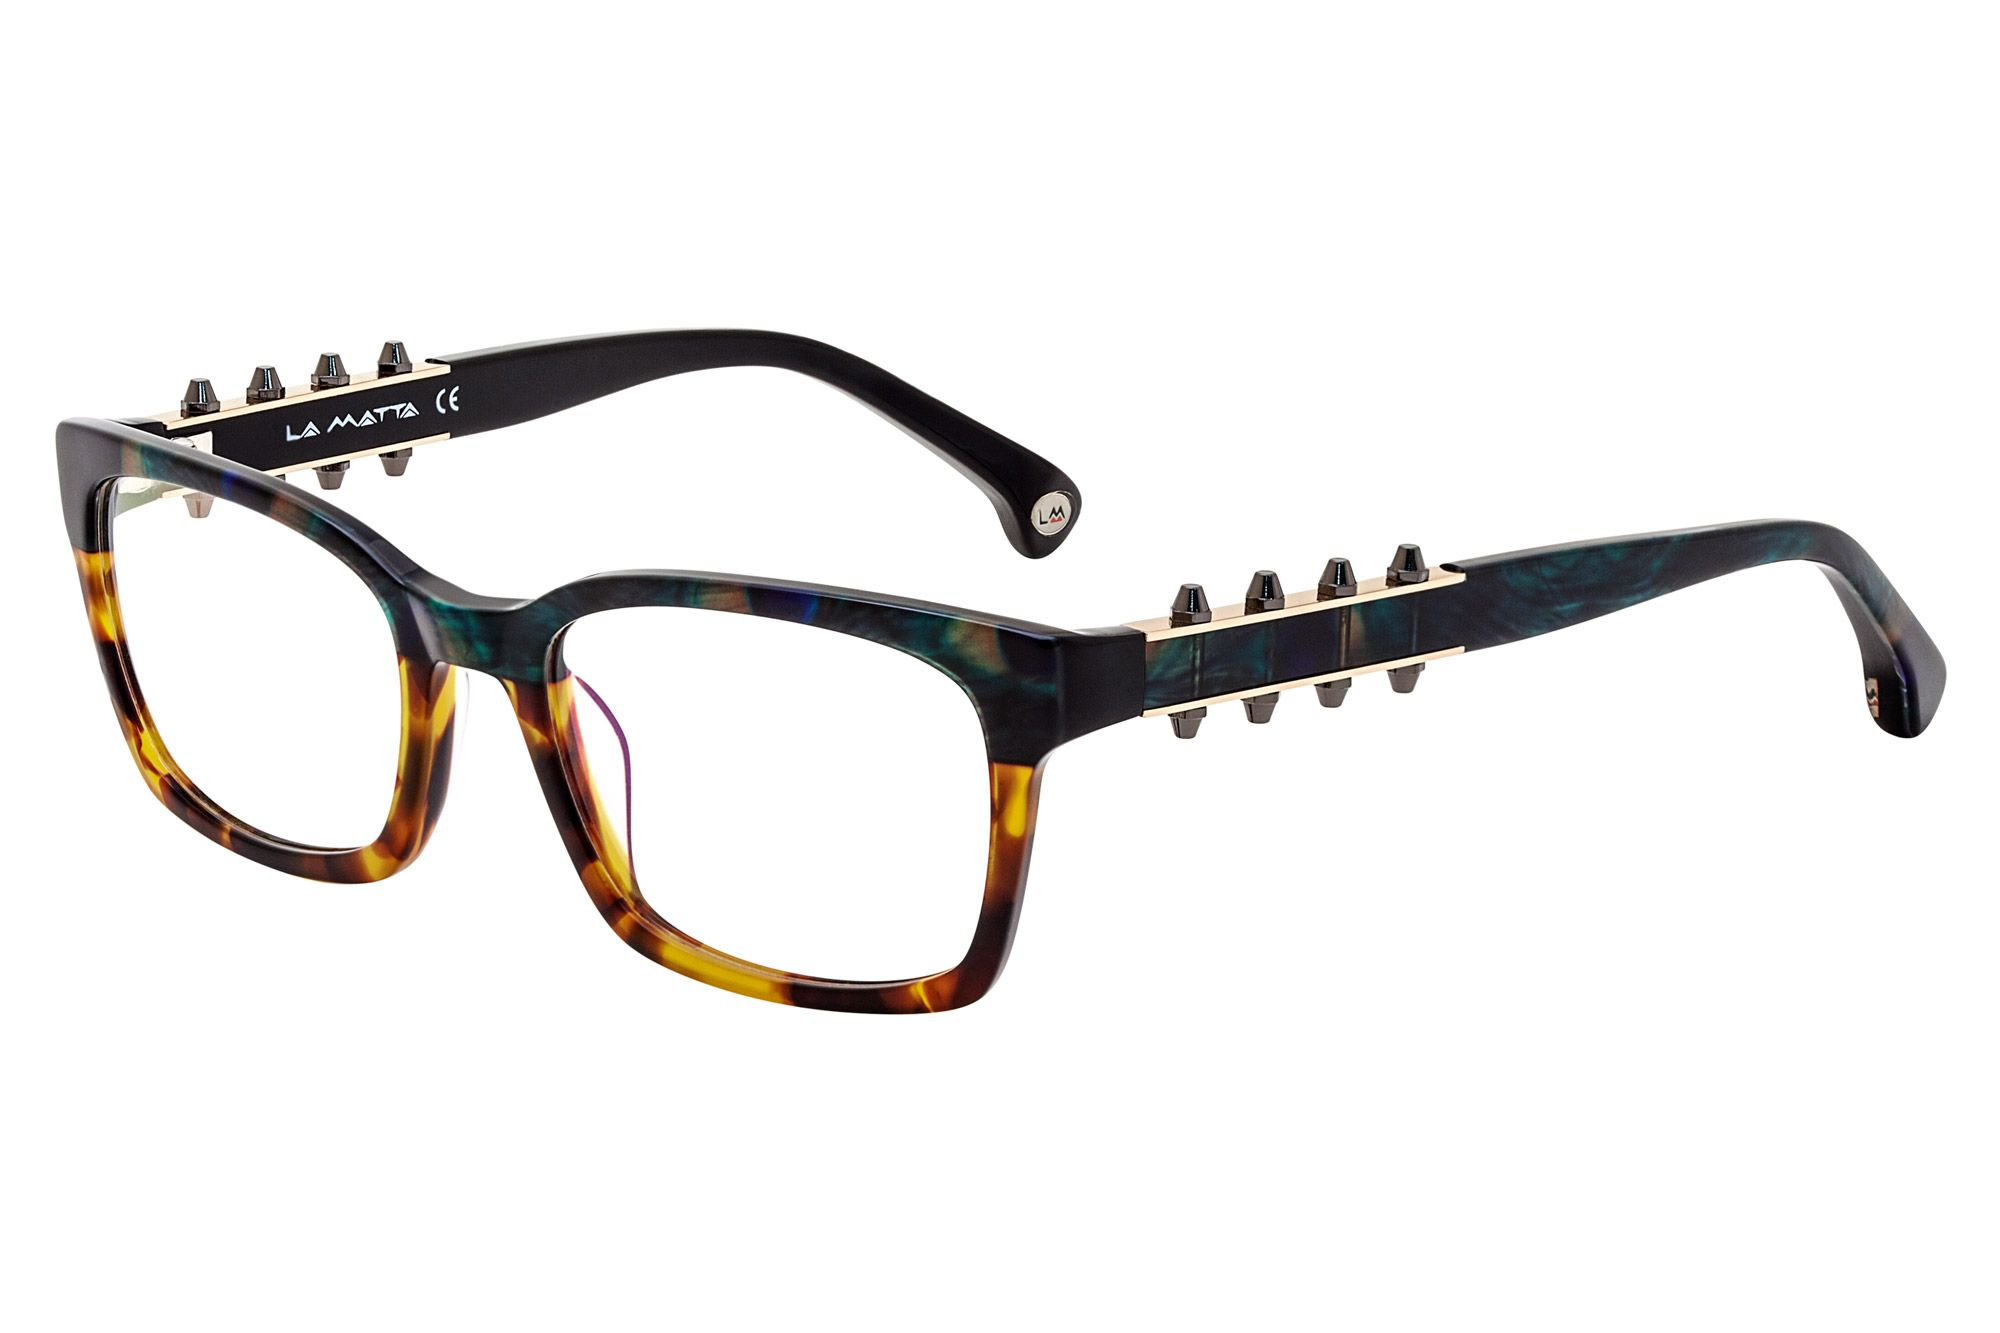 La Matta Eyewear by Area98 - Mod. LM3178 #eyewear #glasses #frame ...